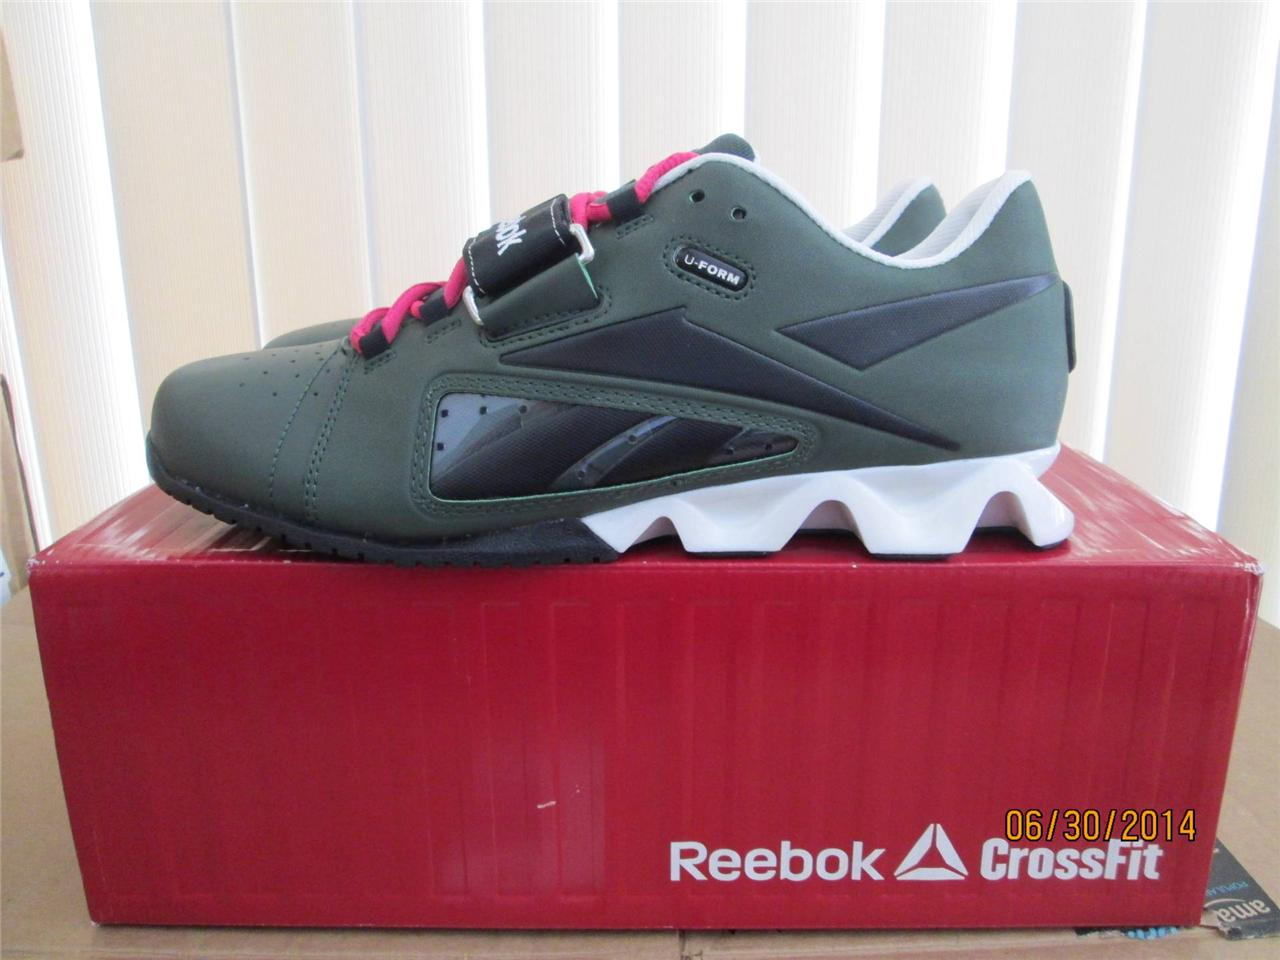 Reebok crossfit outlet